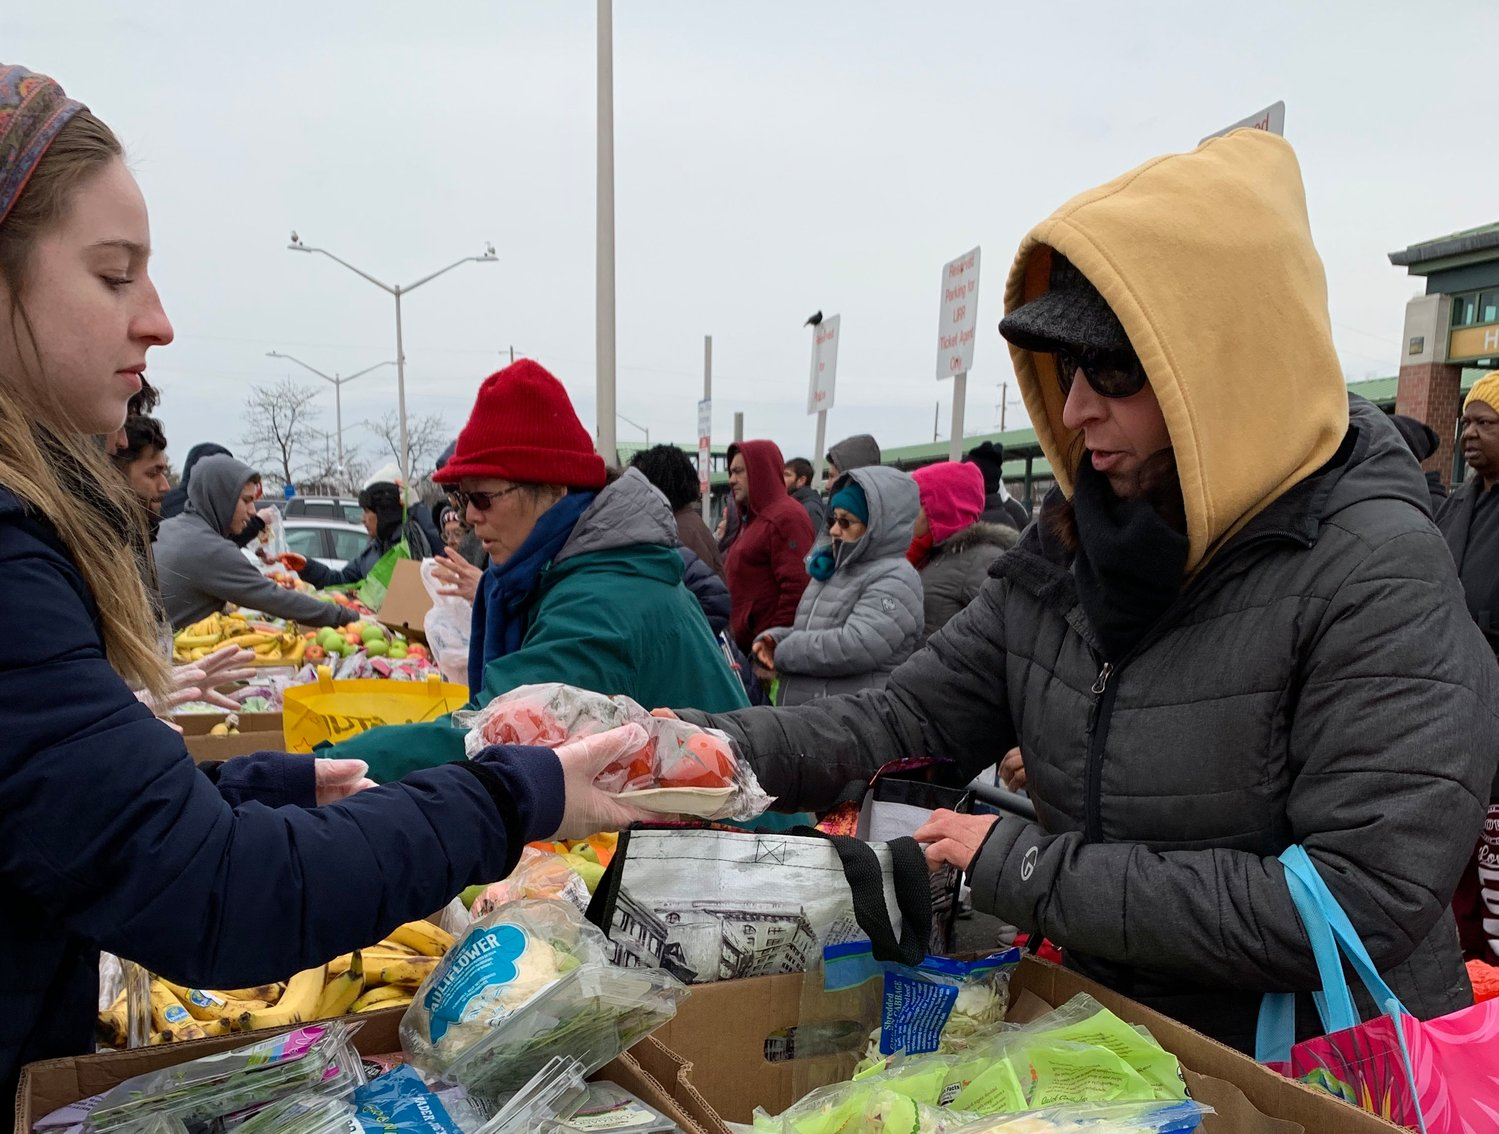 A volunteer makes sure to give people the vegetables they prefer.